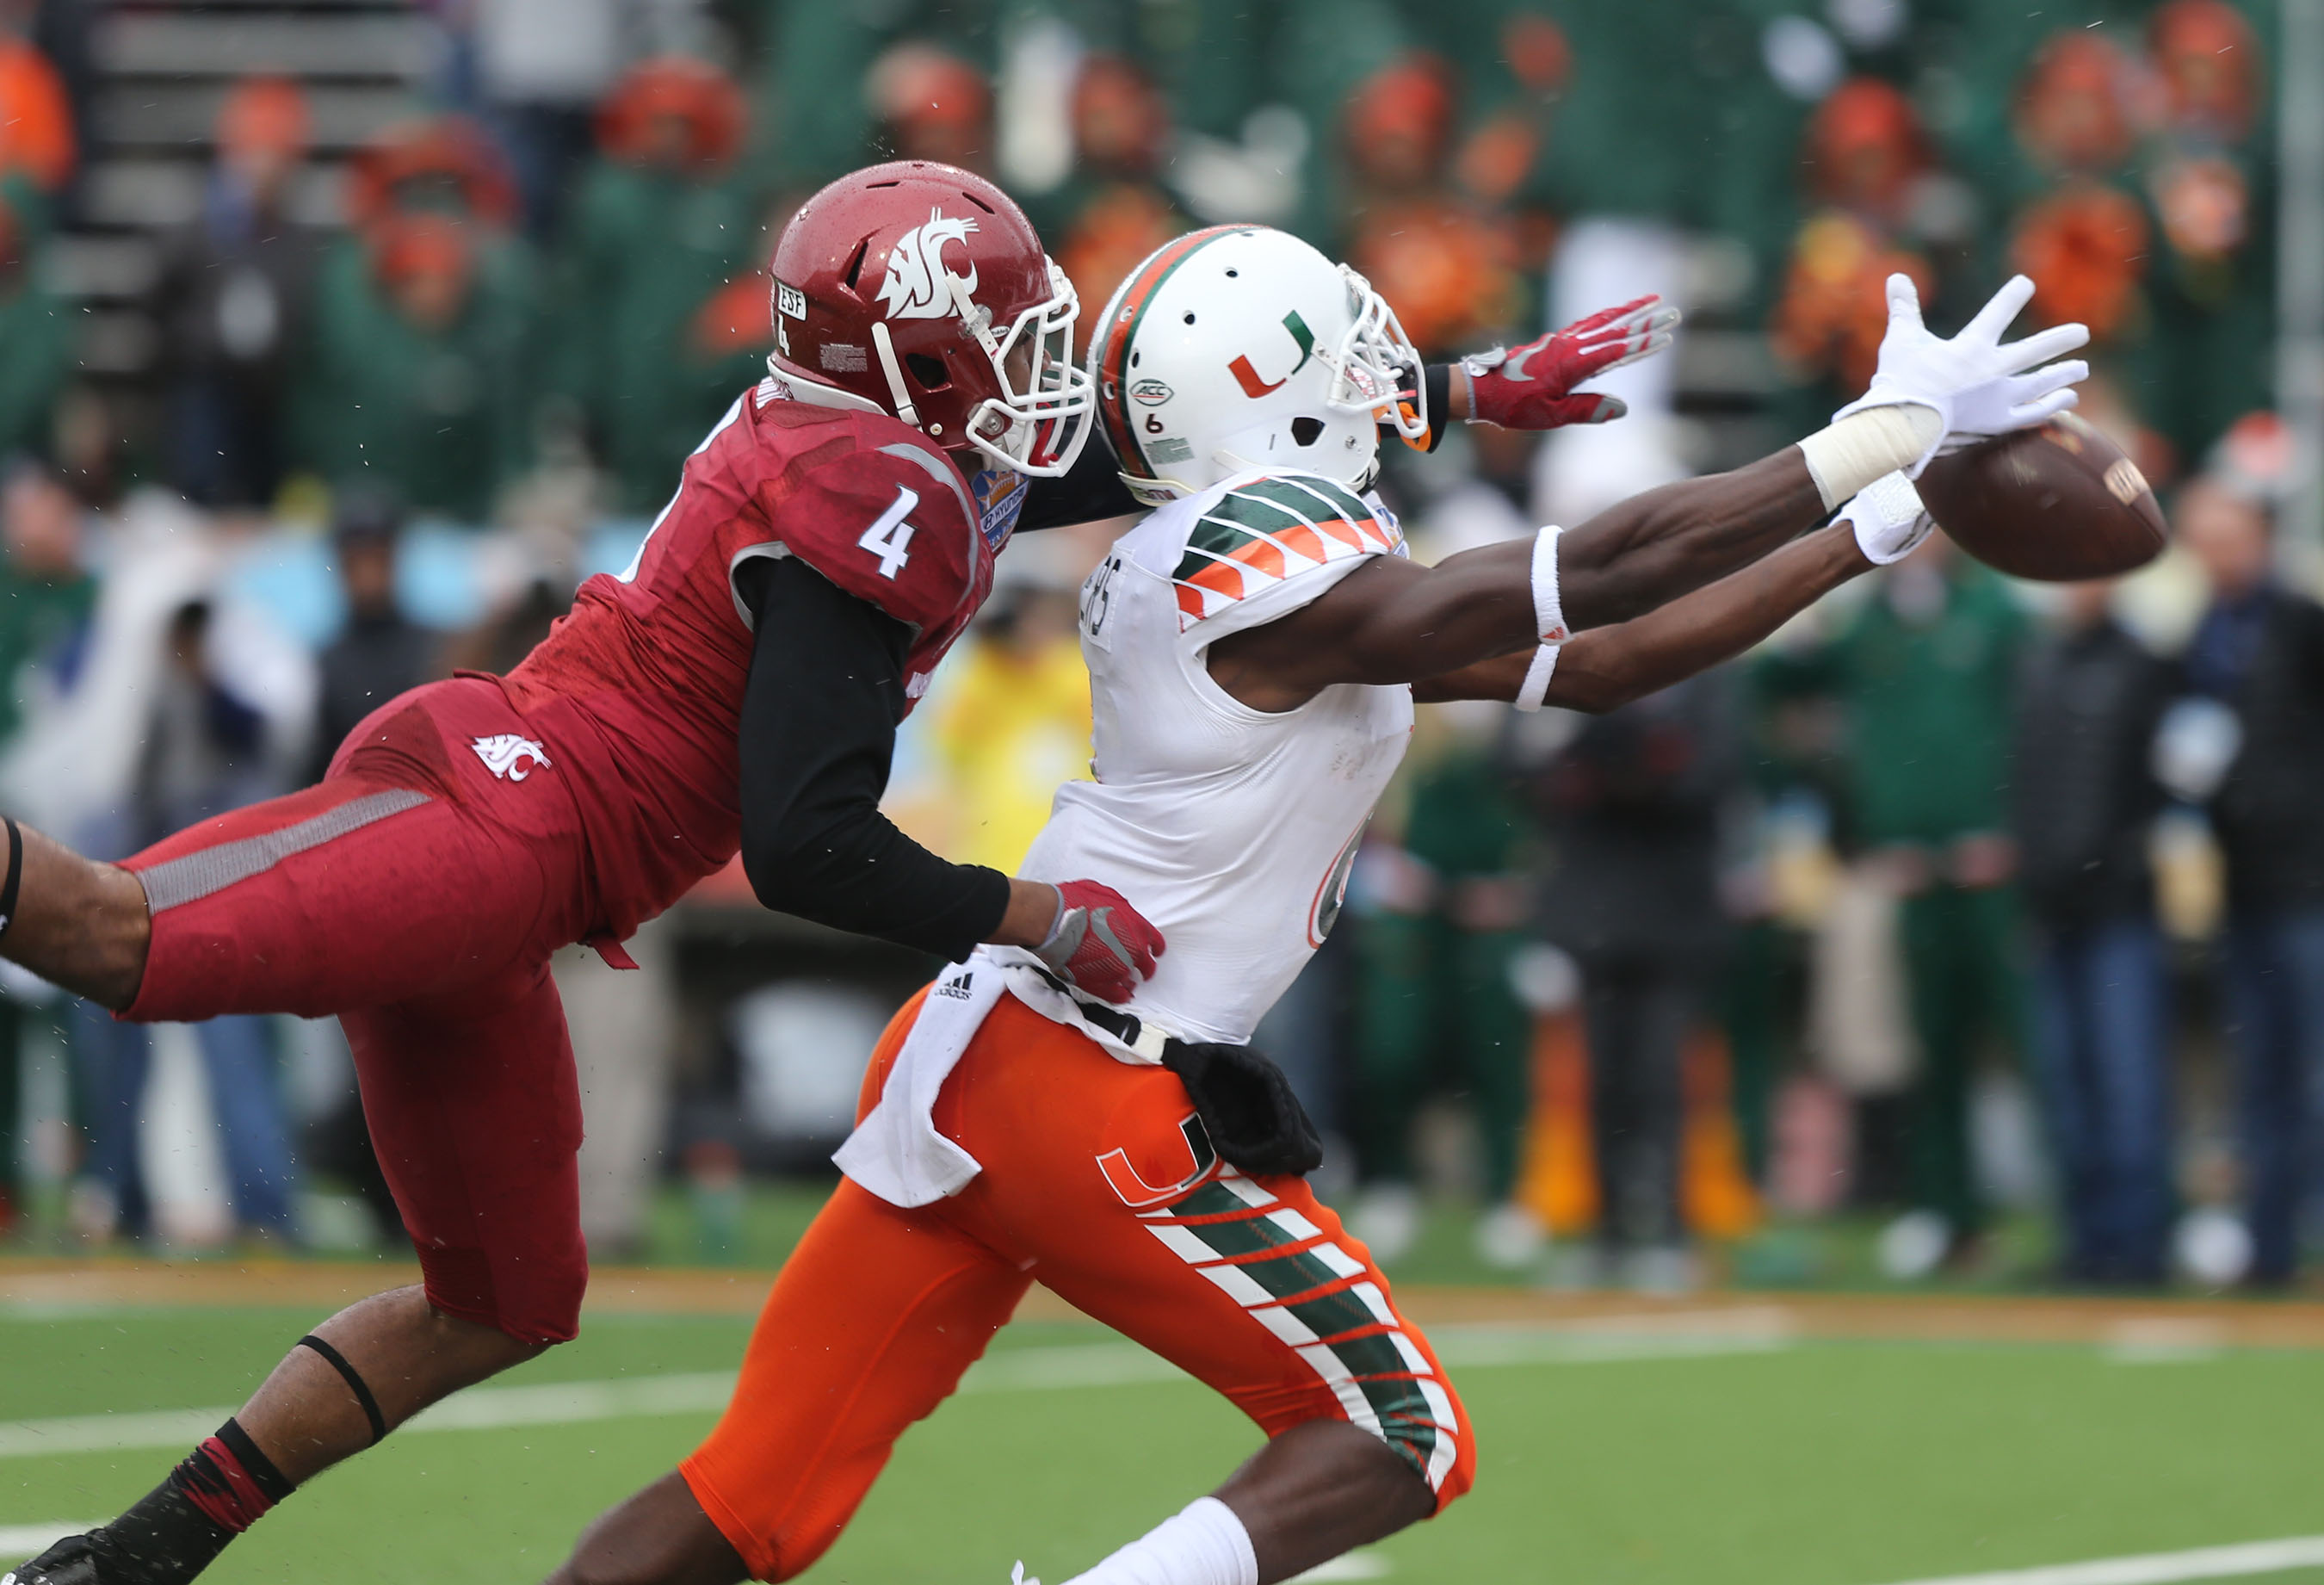 Miami receiver Herb Waters stretches to reach a long pass in front of Washington State defender Charleston White during the first half of the Sun Bowl NCAA college football game Saturday Dec. 26, 2015 in El Paso, Texas. (AP Photo/Victor Calzada)